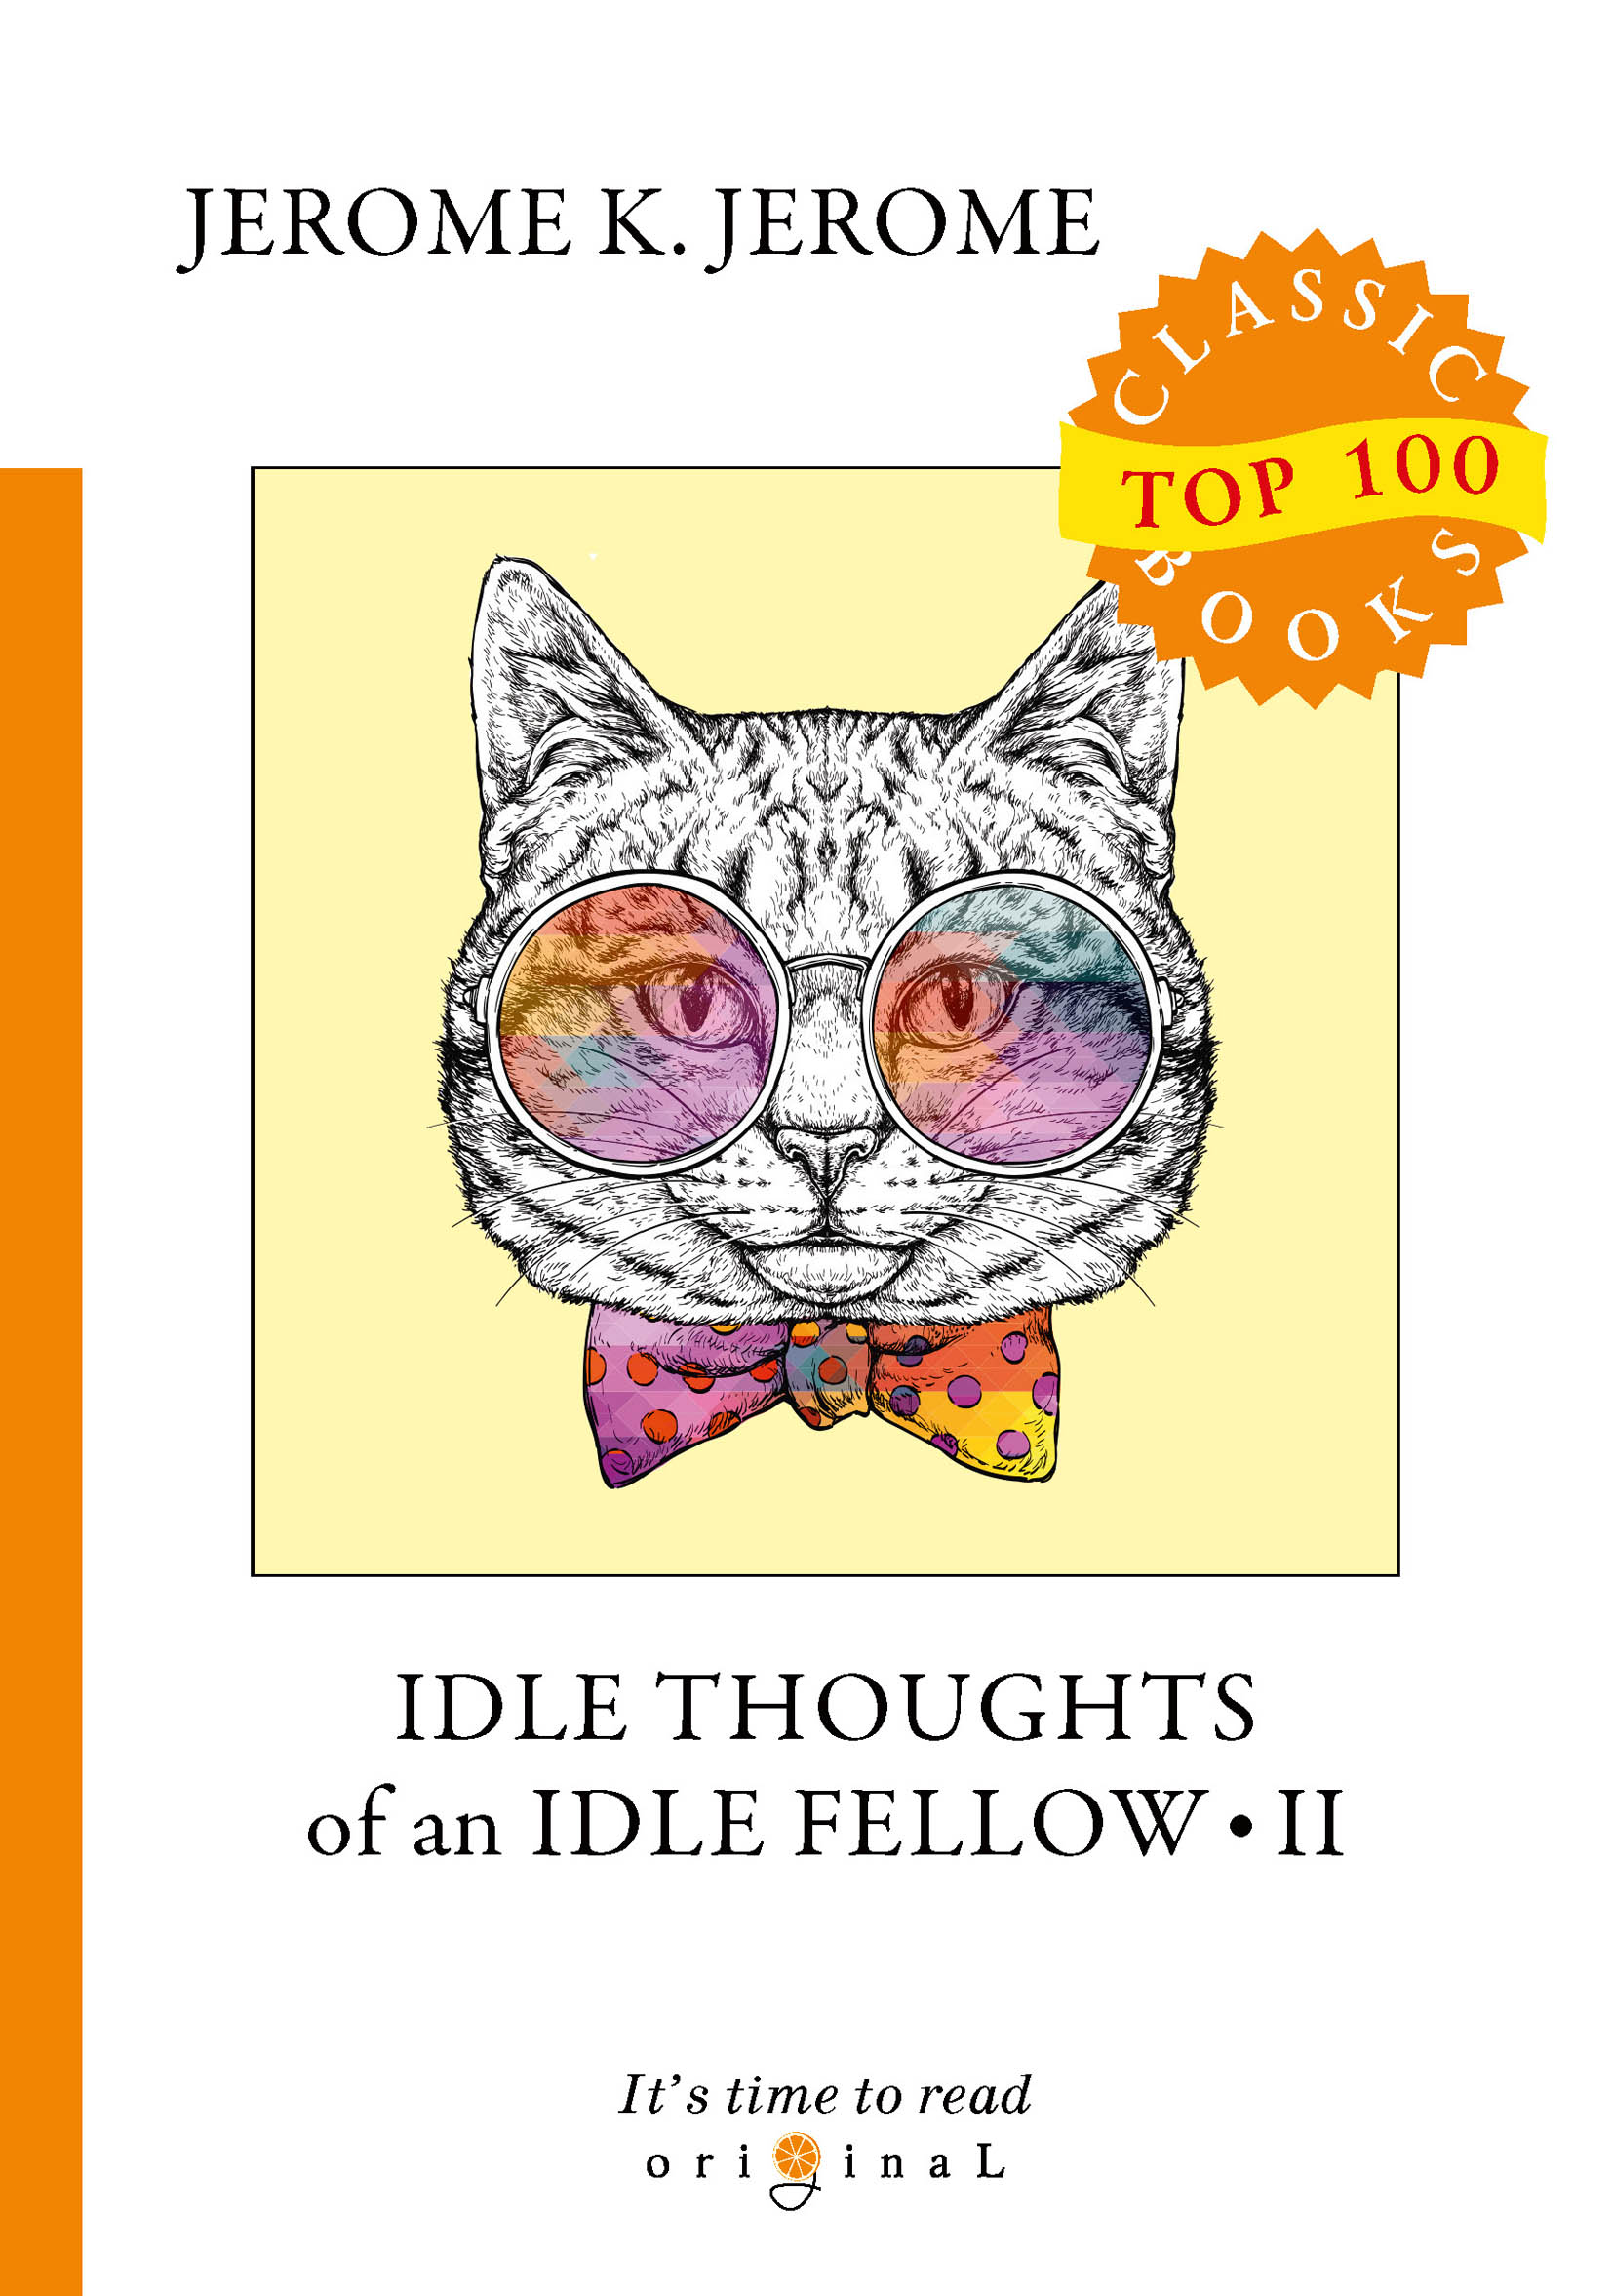 J. K. Jerome Idle Thoughts of an Idle Fellow II джером клапка джером the idle thoughts of an idle fellow